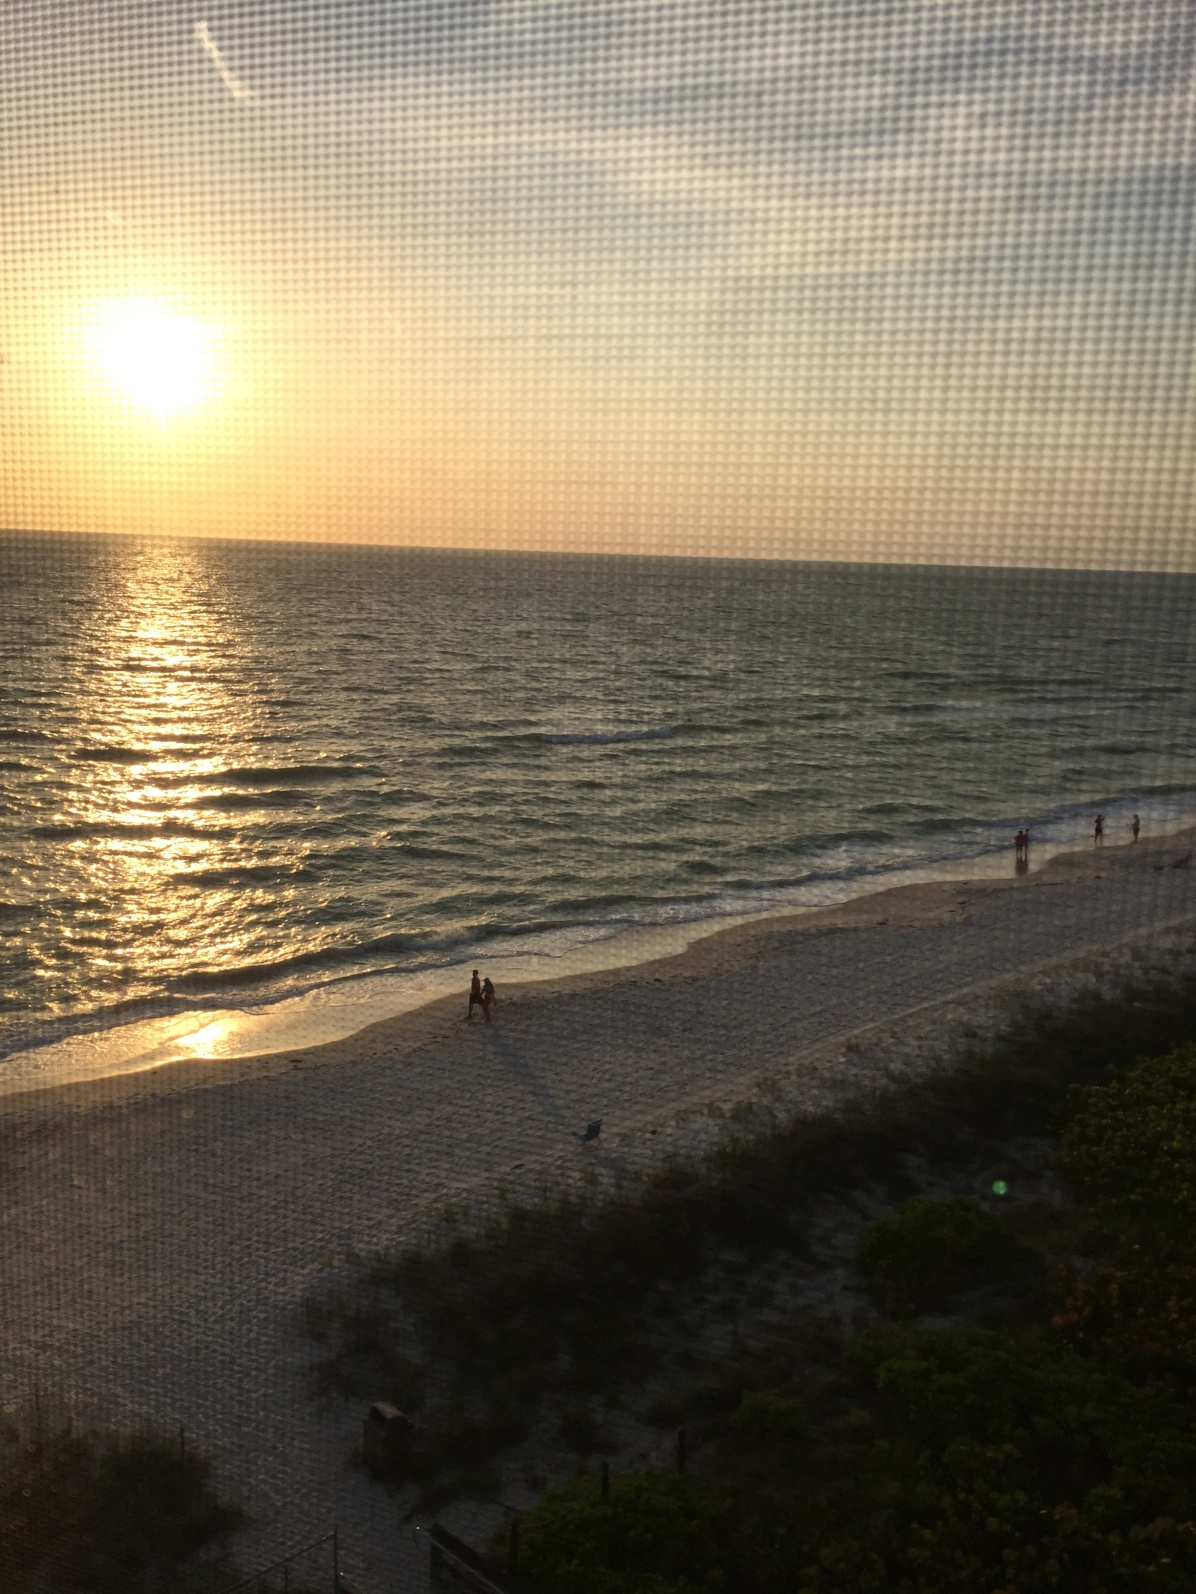 View from our friends' family condo. Winning all around.